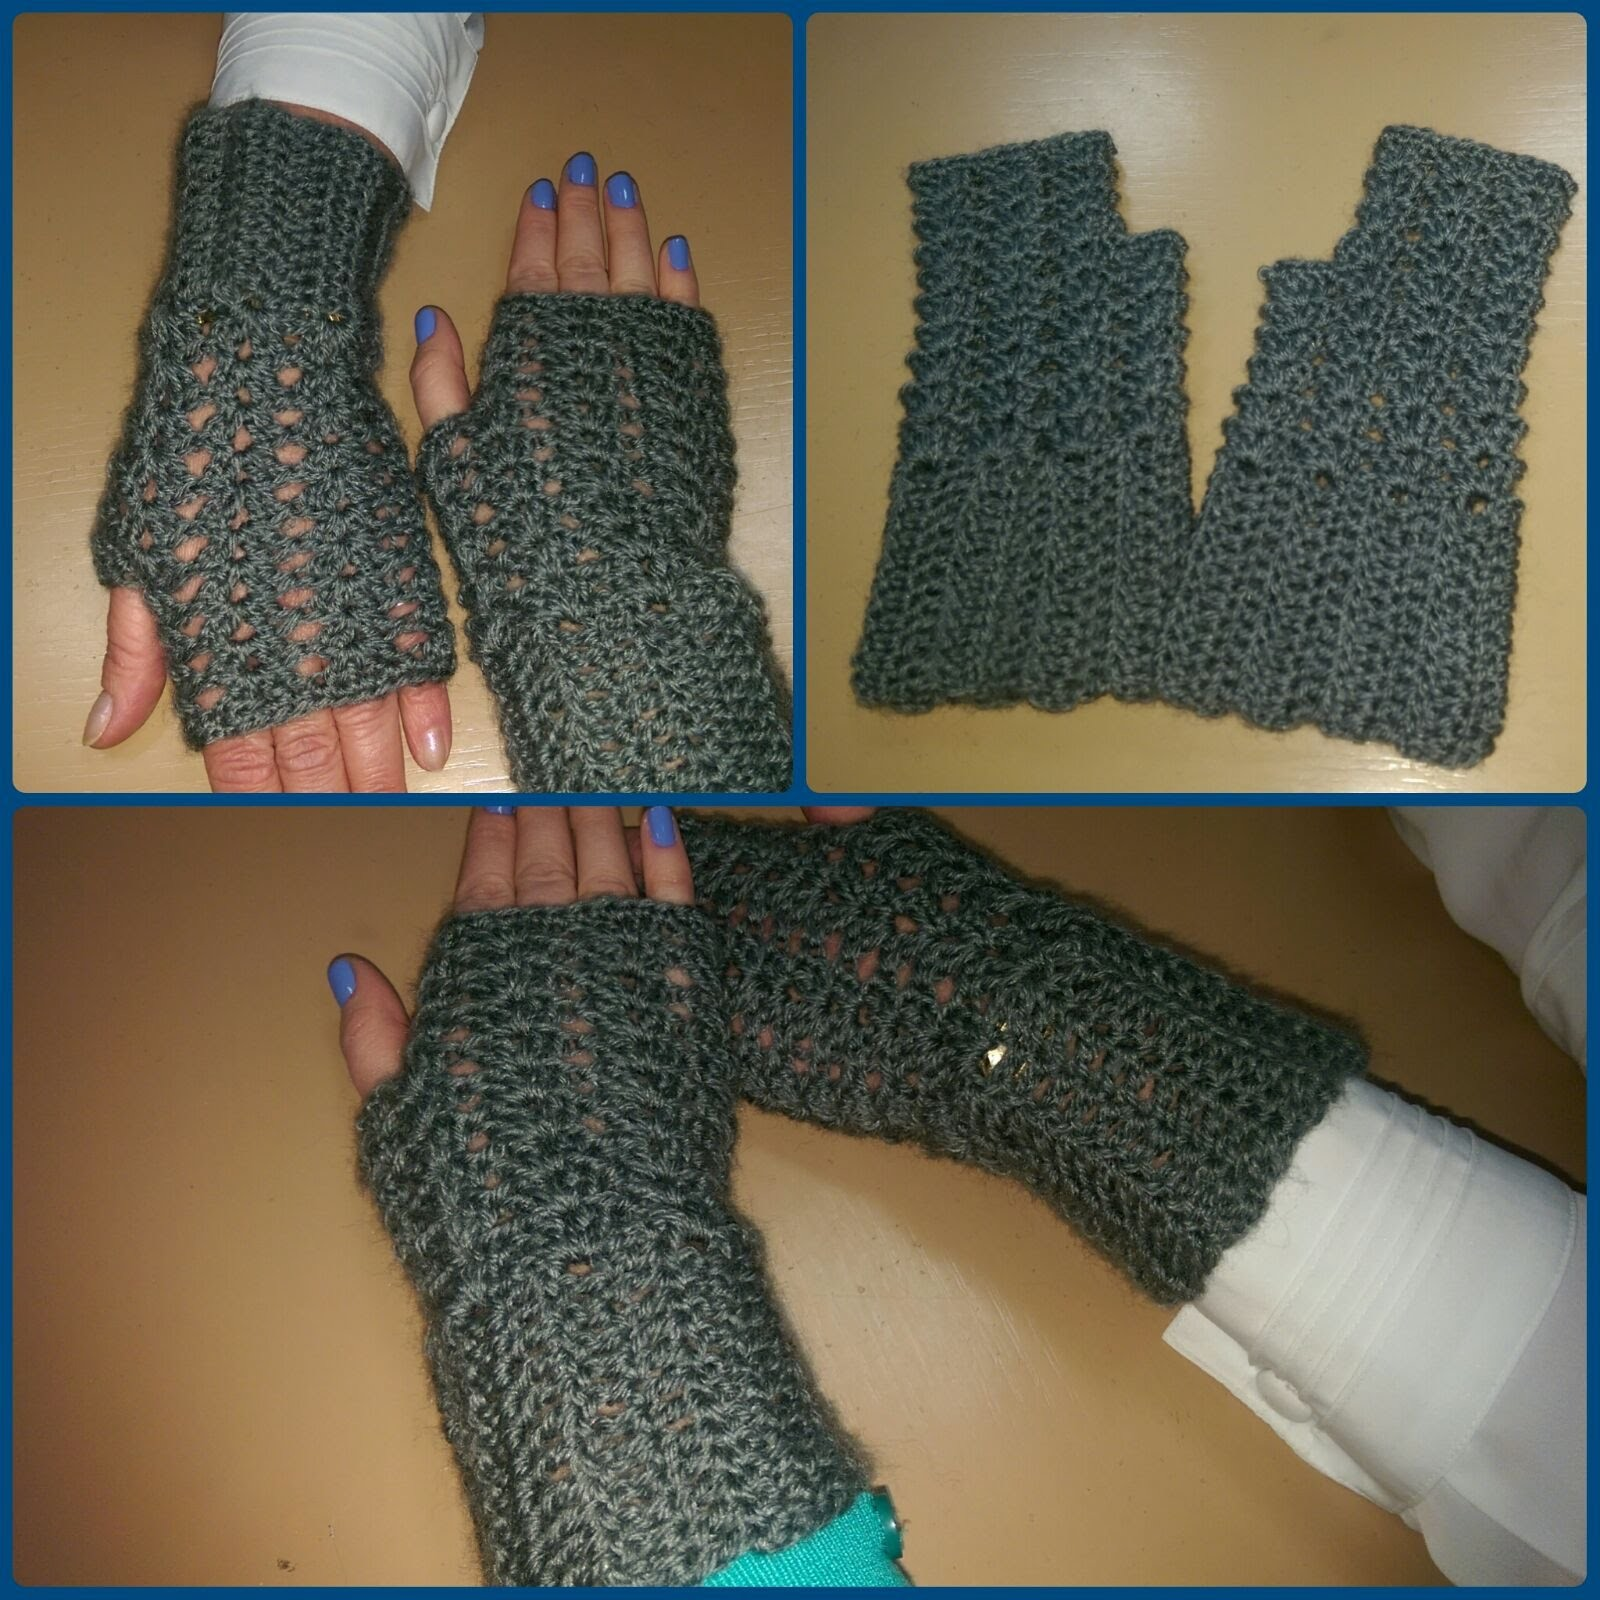 Guanti senza dita all'uncinetto - Tutorial scaldamani - How to crochet fingerless gloves